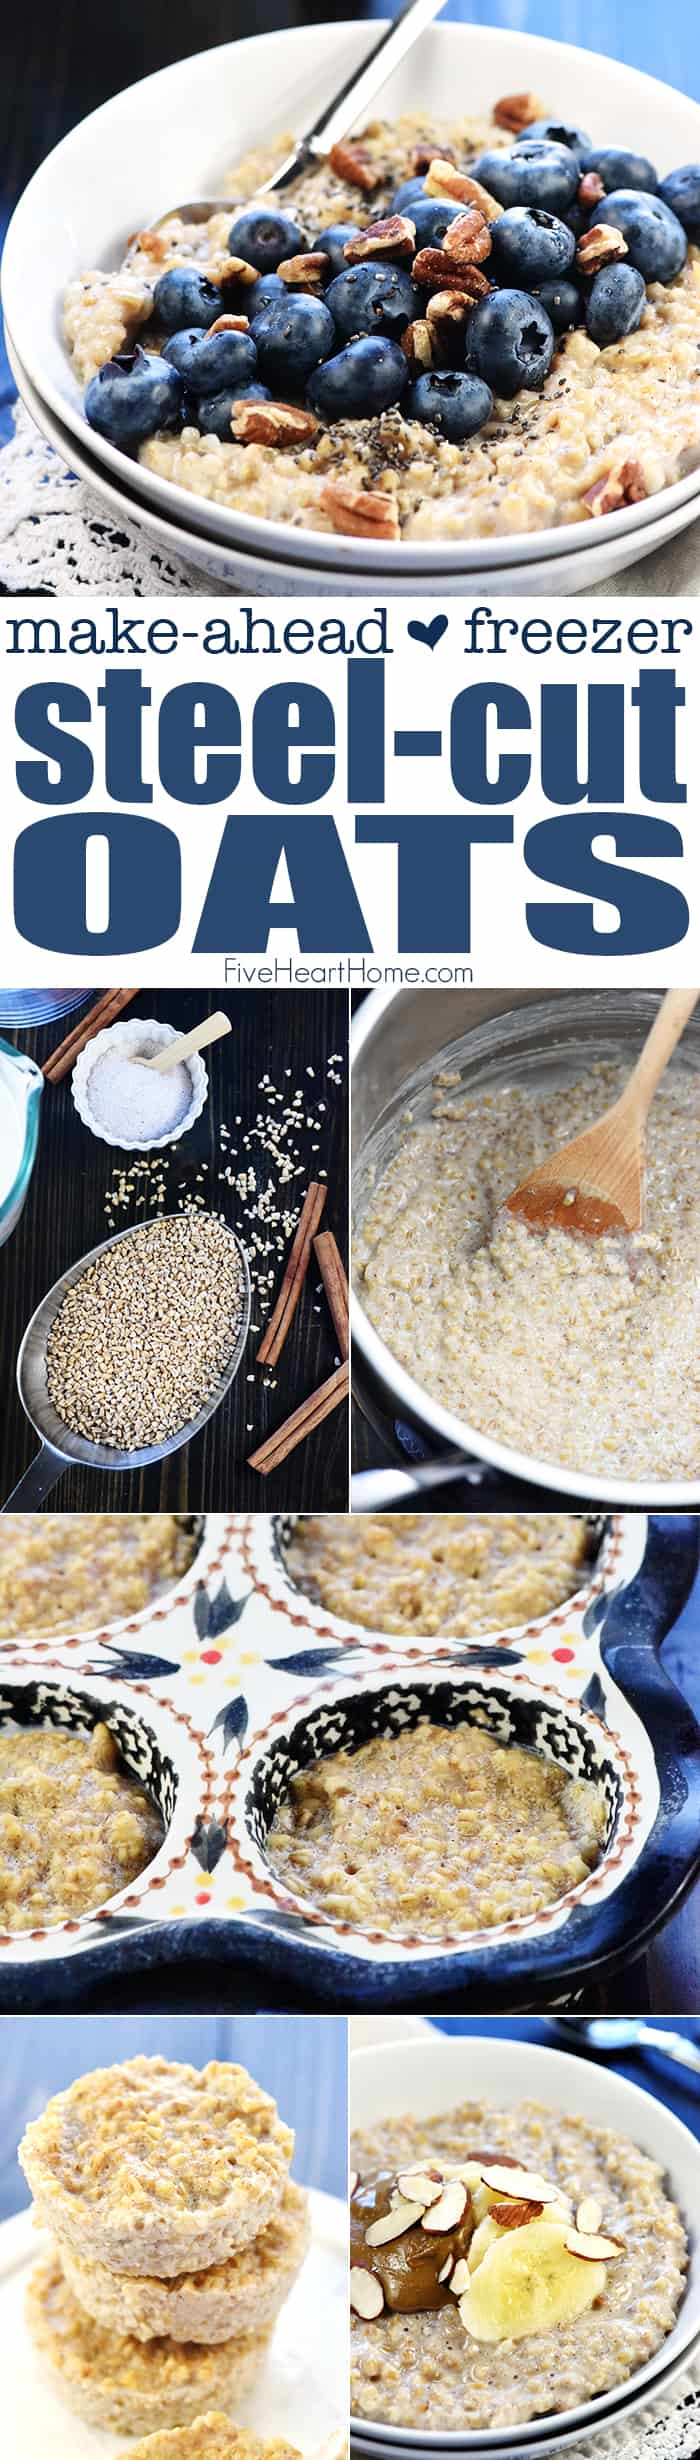 Frozen Steel Cut Oats collage of finished oats and step by step pictures with text overlay